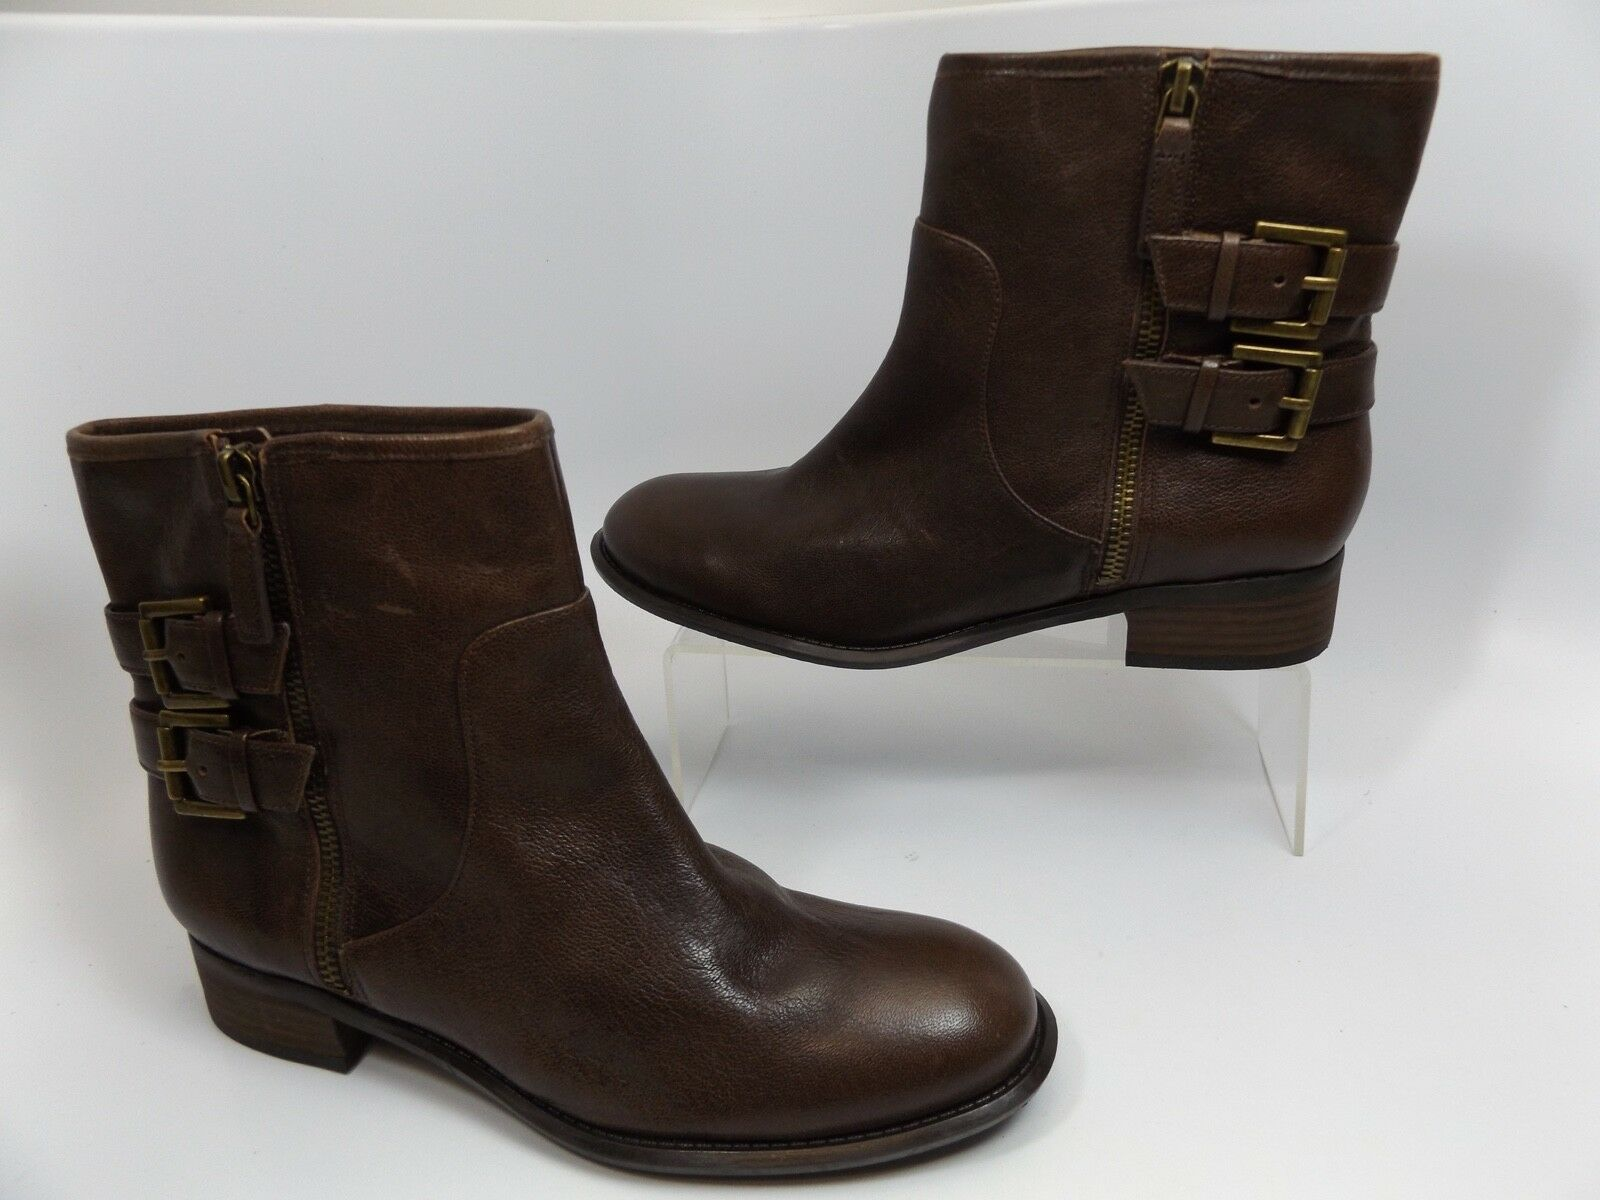 Nine West Women's Justthis Leather Boot Brown SZ SZ SZ 7.0 M NEW DISPLAY D8827 ce34d8